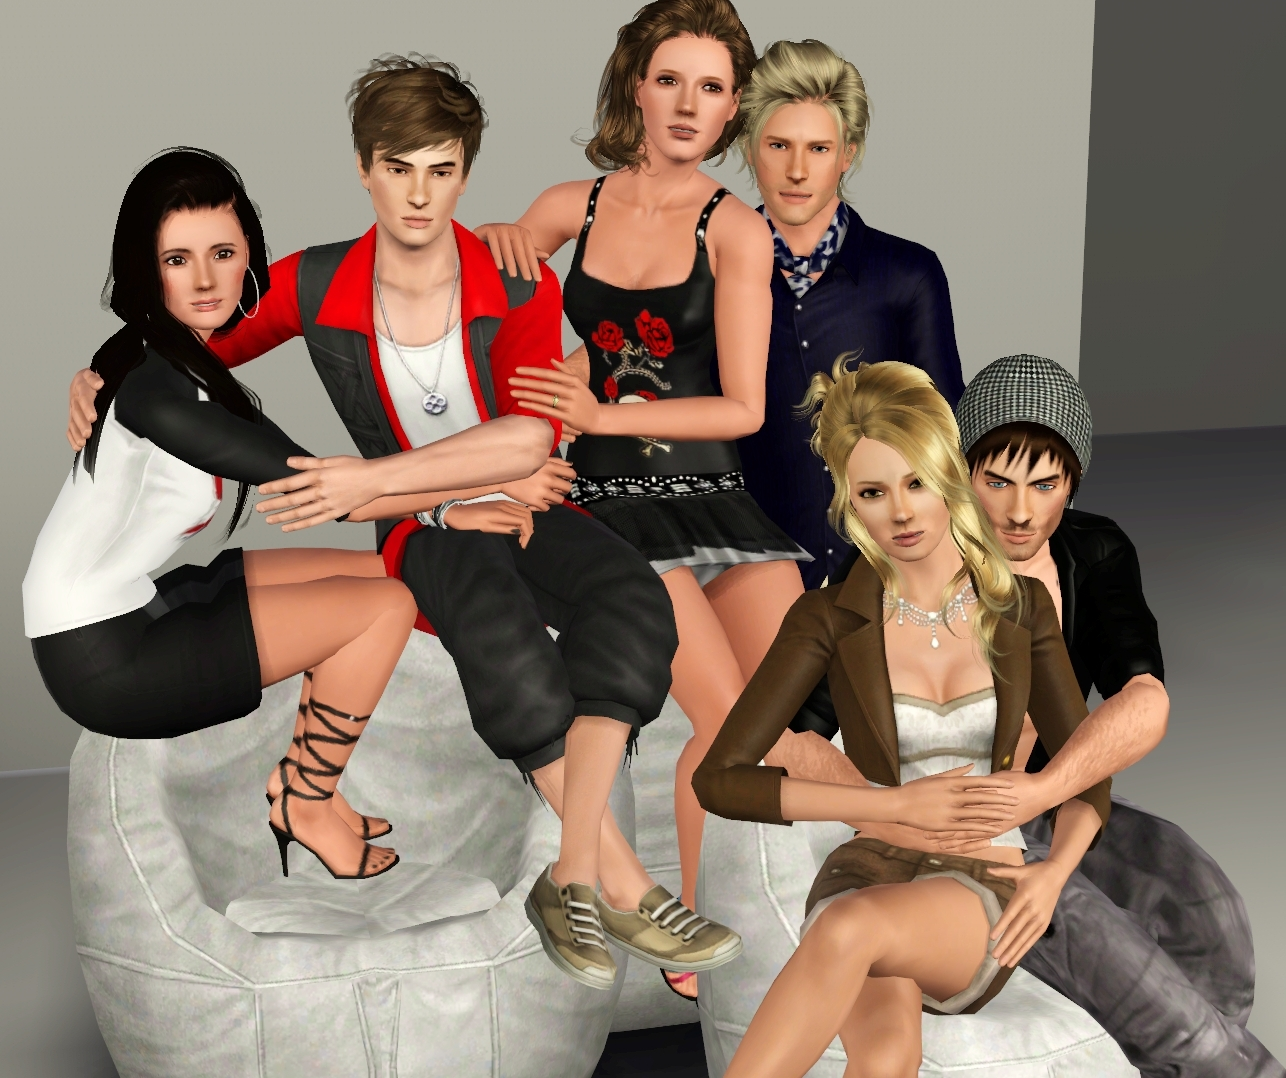 Sims 3 Male Models and Celebrities: May 2012